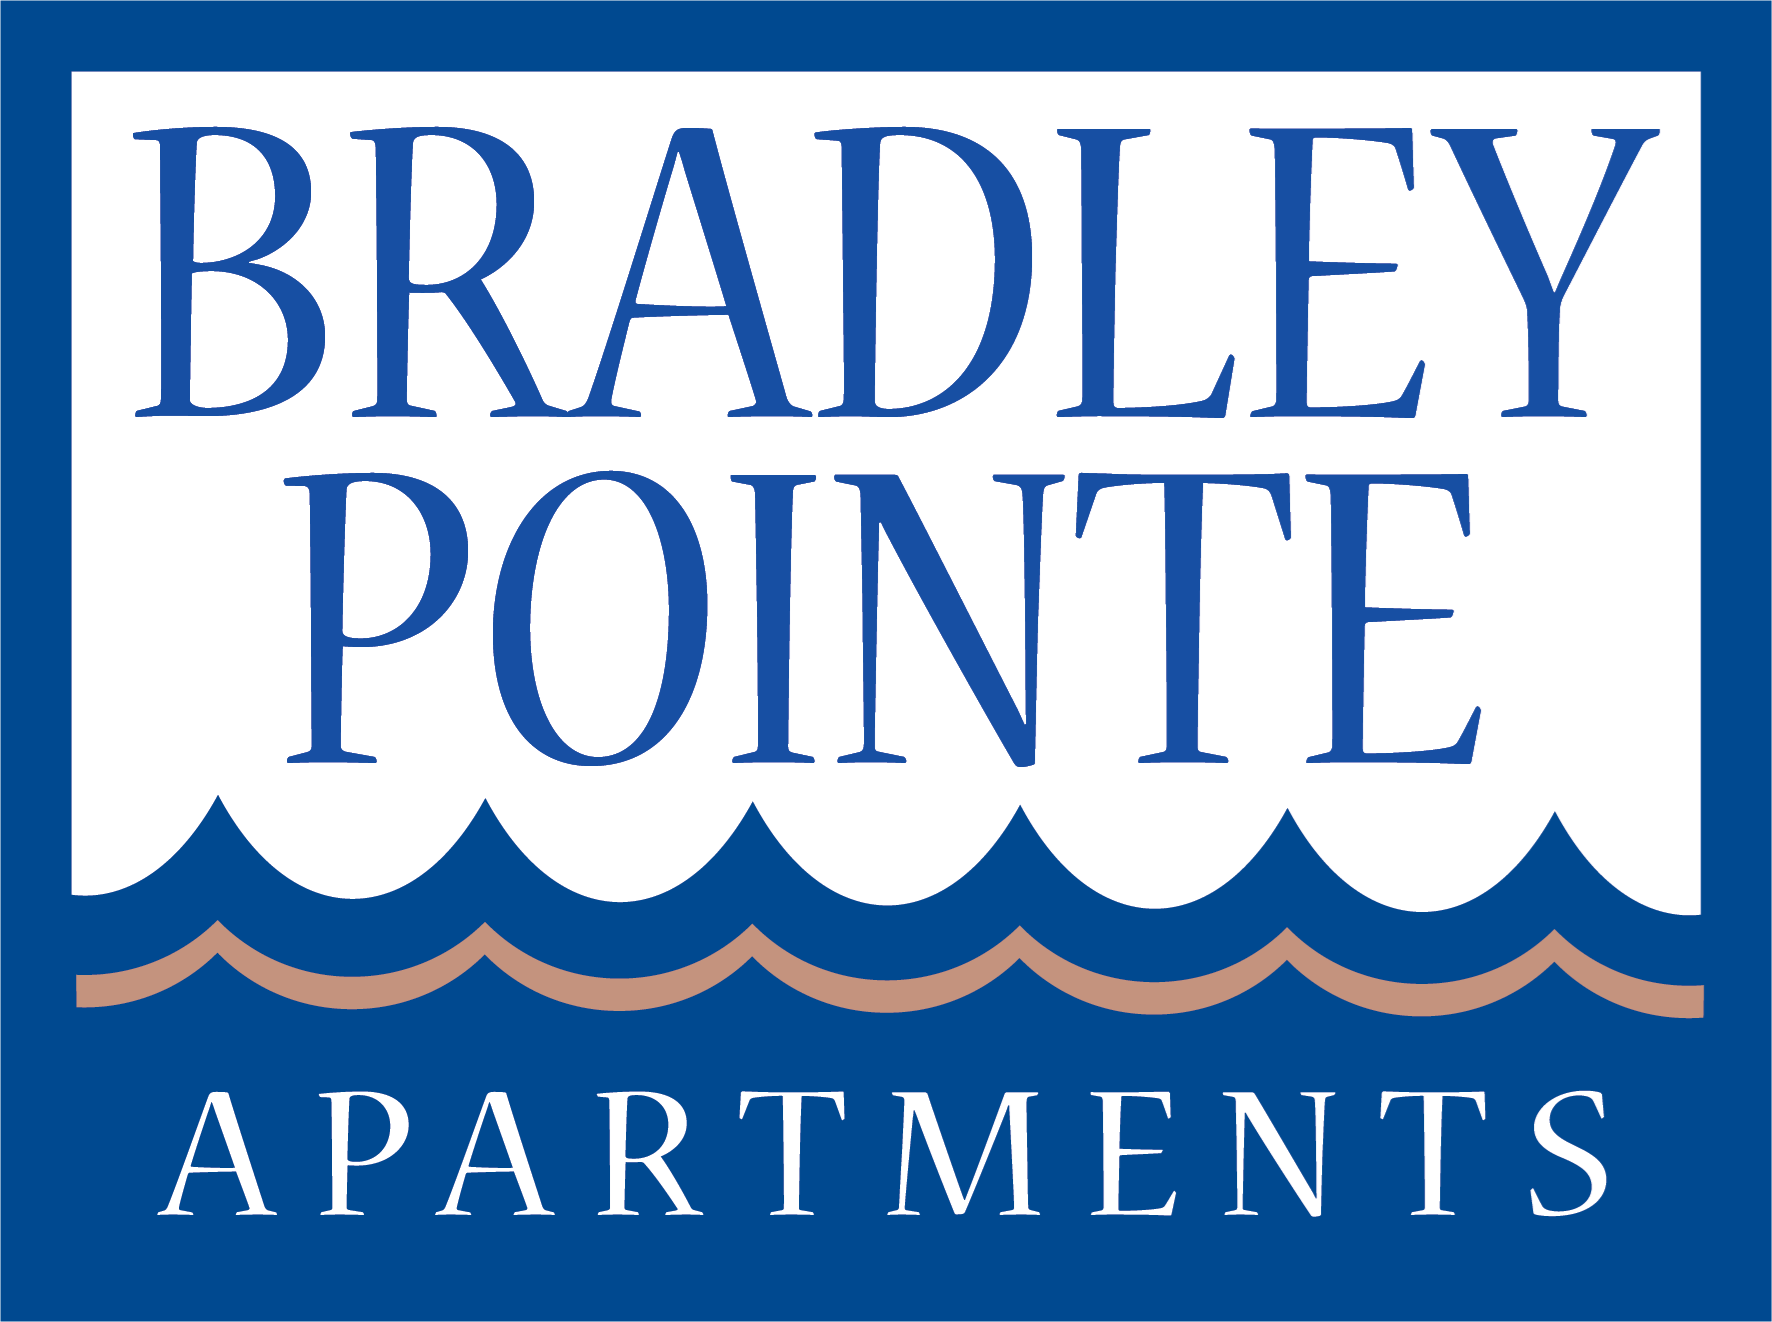 Bradley Pointe Apartments for rent in Savannah, GA. Make this community your new home or visit other ConcordRENTS communities at ConcordRENTS.com. Logo